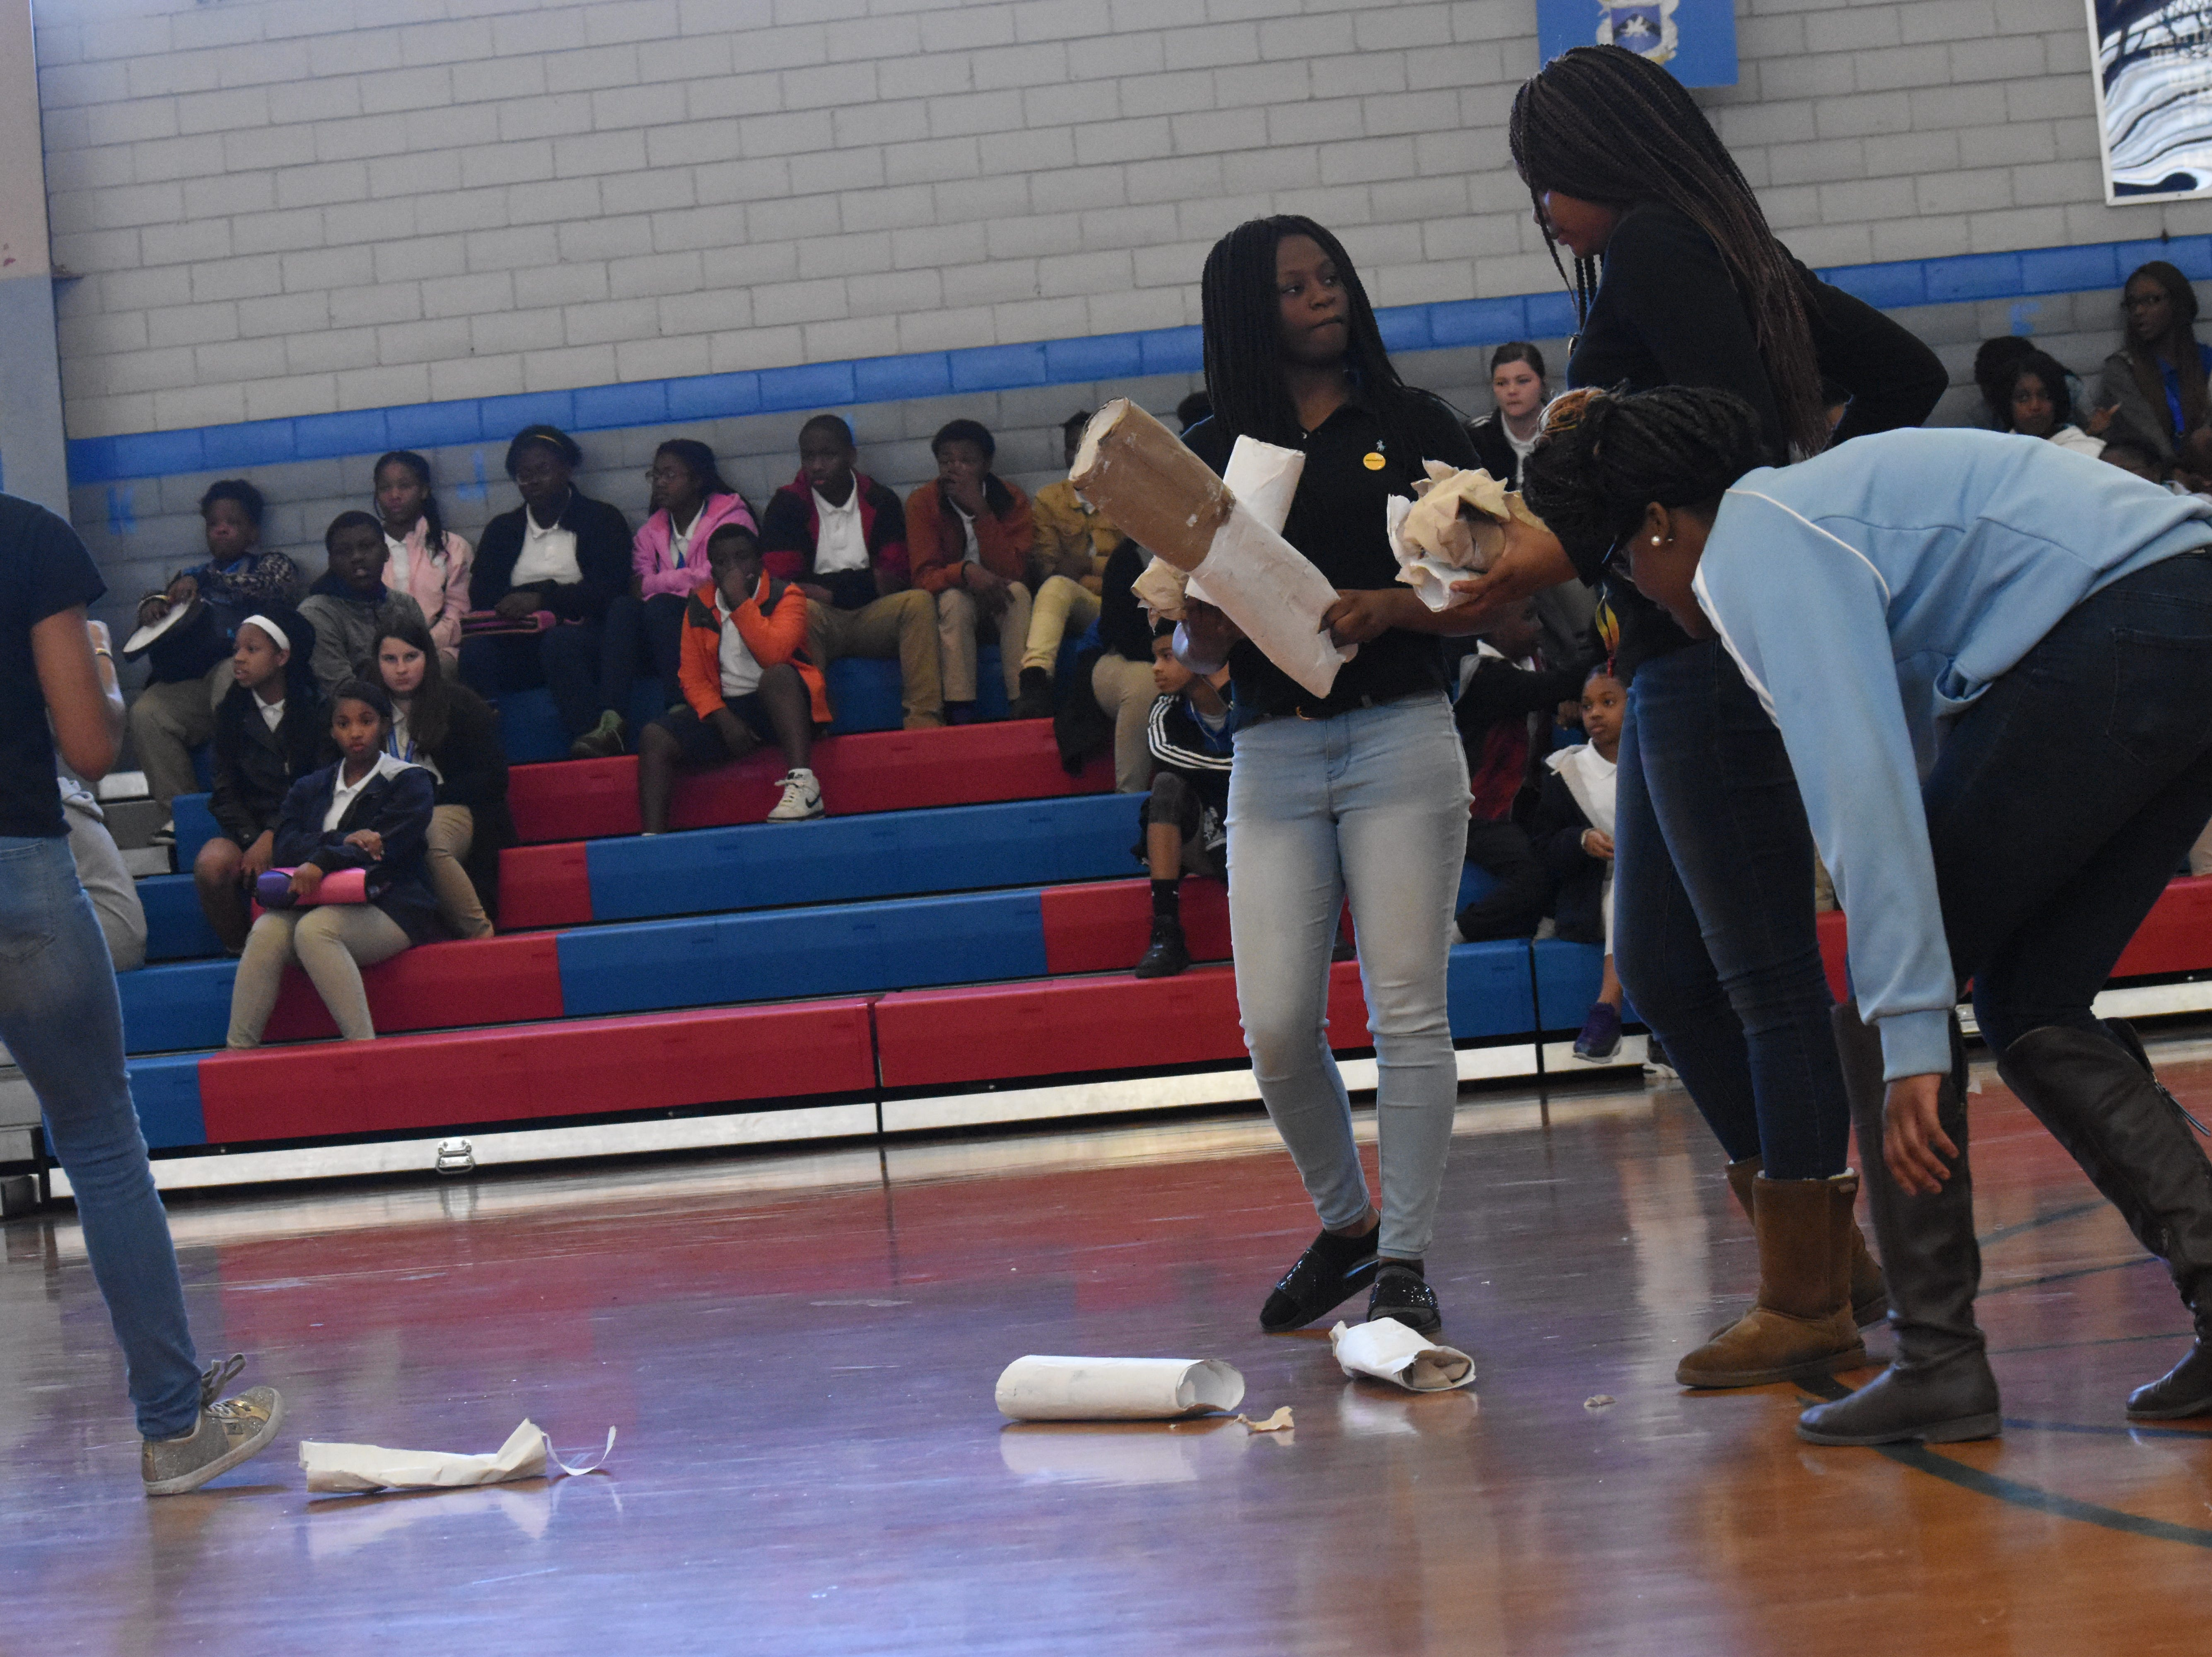 """Members of the Living Healthy Club at Alexandria Middle Magnet School held an assembly for Kick Butts Day which is recognized nationally by young people to raise awareness against the use of tobacco products.The students wrote the skit and came up with the activities for the assembly. AMMS was one of 53 schools in Central Louisiana participating in Kick Butts Day with funding from the Healthy Behaviors School District Partnership Grant from The Rapides Foundation. Kick Butts Day is recognized nationally by young people to raise awareness against the use of tobacco products. A press release from The Rapides Foundation states, """"The Healthy Behaviors School District Partnership Grant seeks to prevent and reduce tobacco use, substance and alcohol abuse, and overweight/obesity by focusing on changing policy, social norms and environments. Grant activities are based on best and promising practices to create comprehensive school- and community-based awareness and prevention programs in order to positively impact Central Louisiana students, educators and staff. The goal is to provide the knowledge and skills necessary to make better and informed behavior decisions leading to healthier lives."""""""